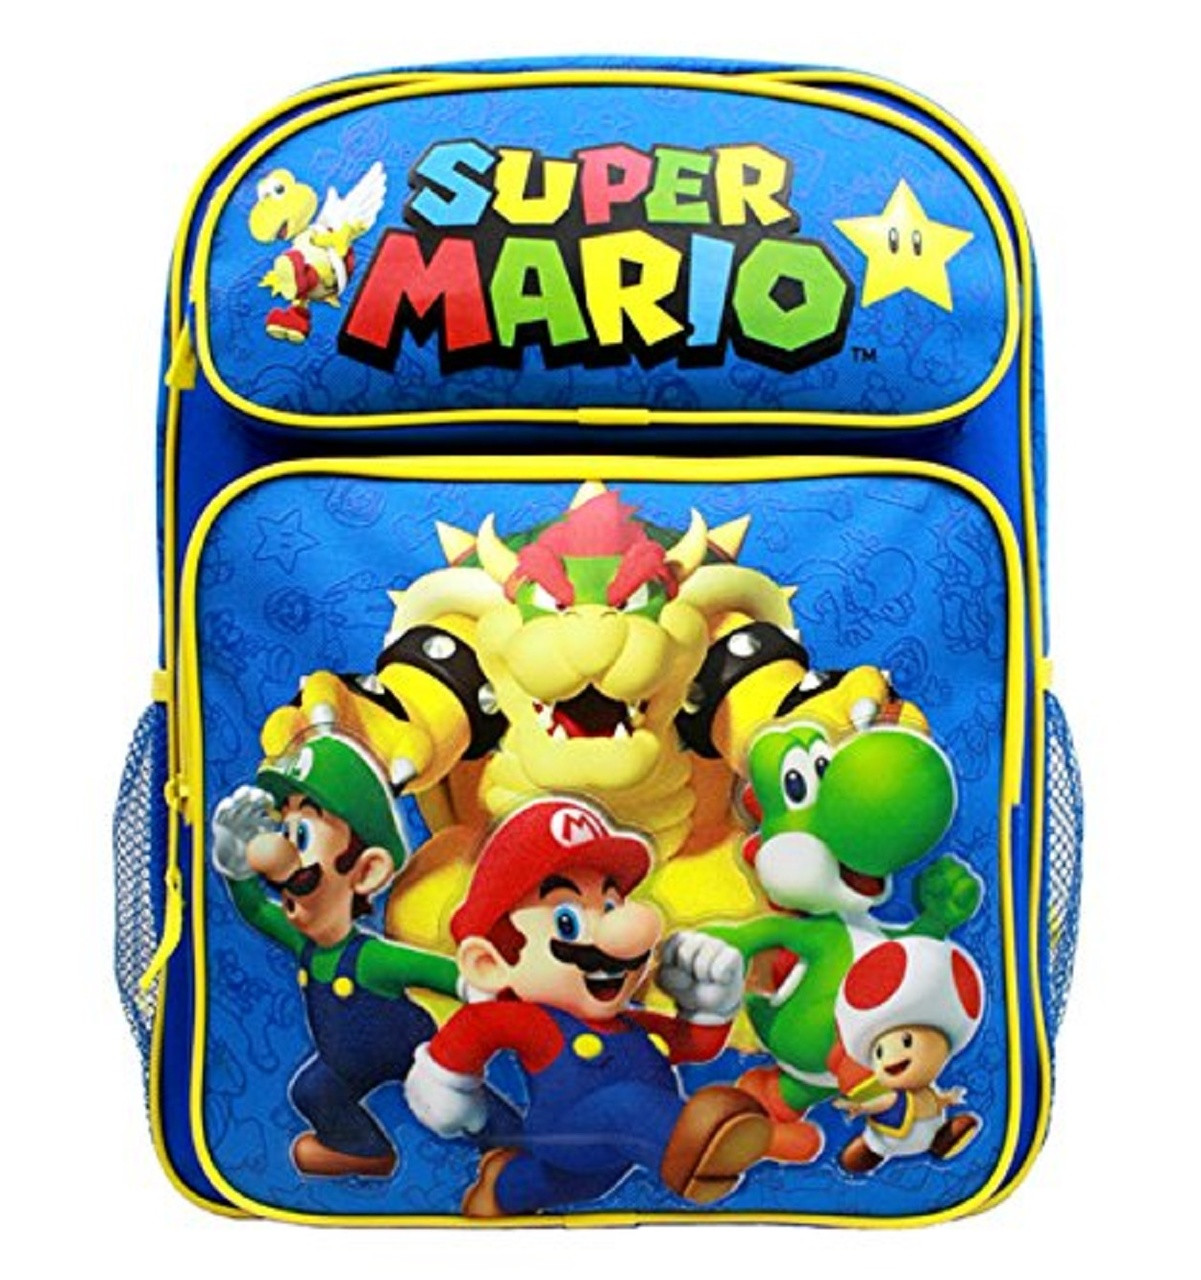 Backpack - Super Mario Brothers - Large 16 Inch - Blue Yellow